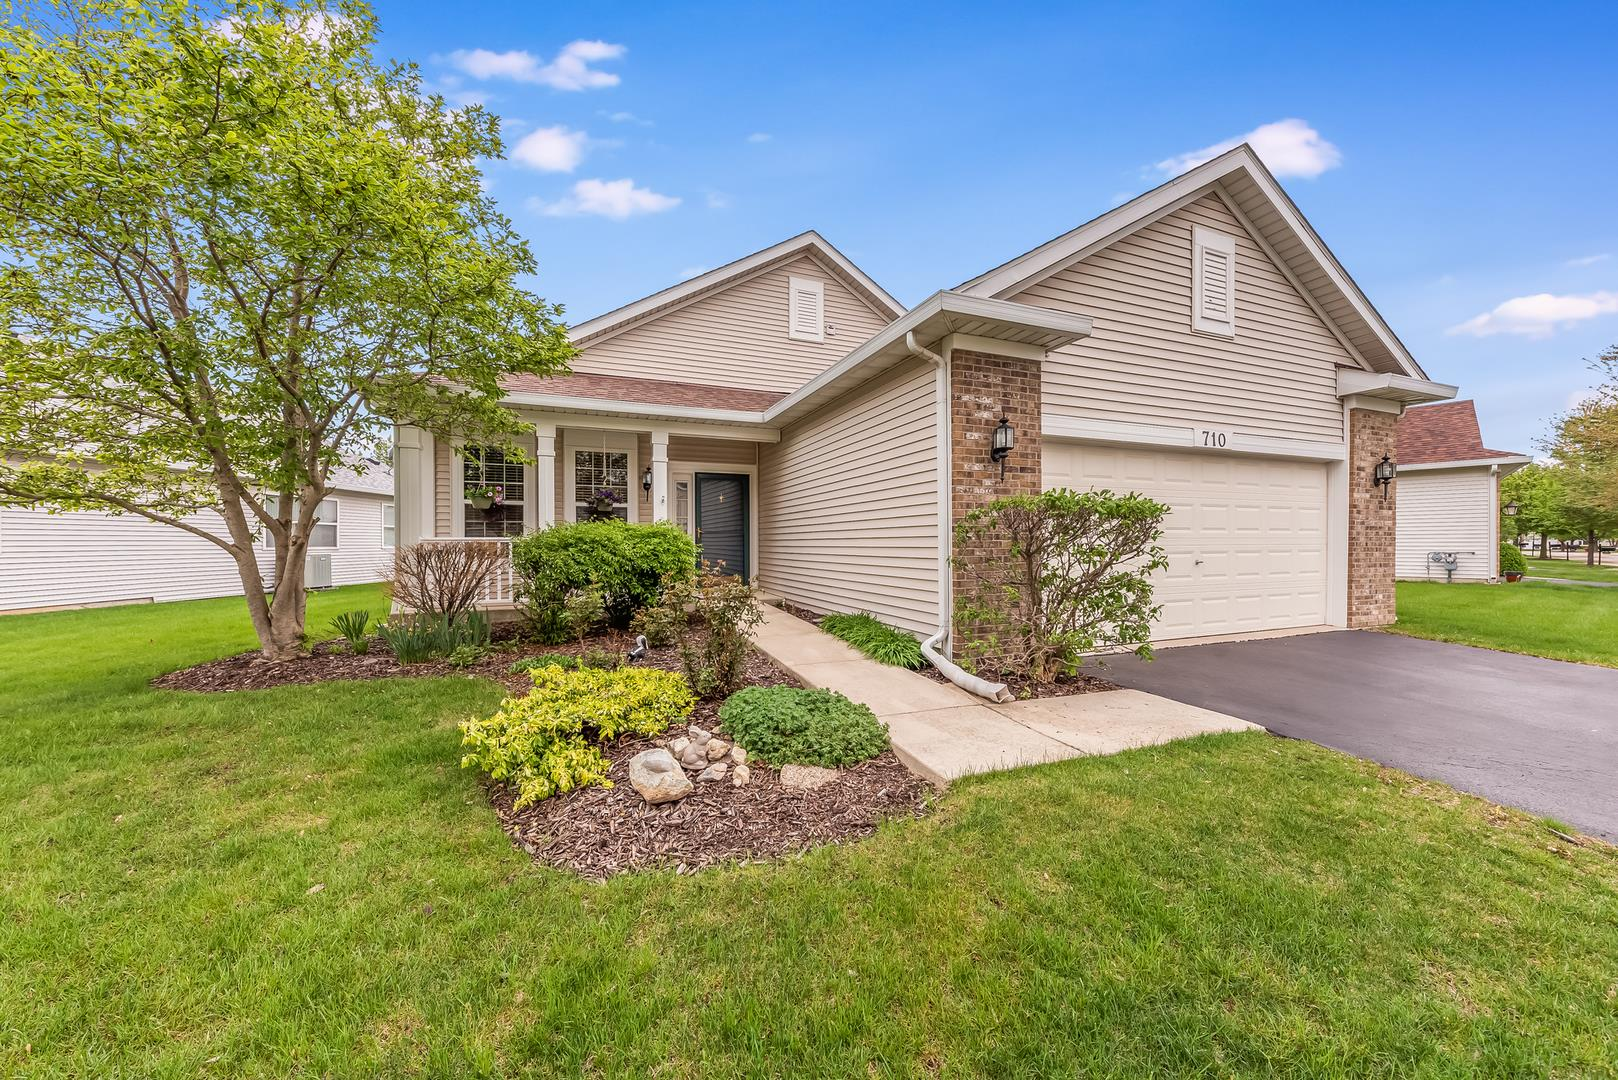 710 S Wellston Lane, Romeoville, IL 60446 - #: 11078752